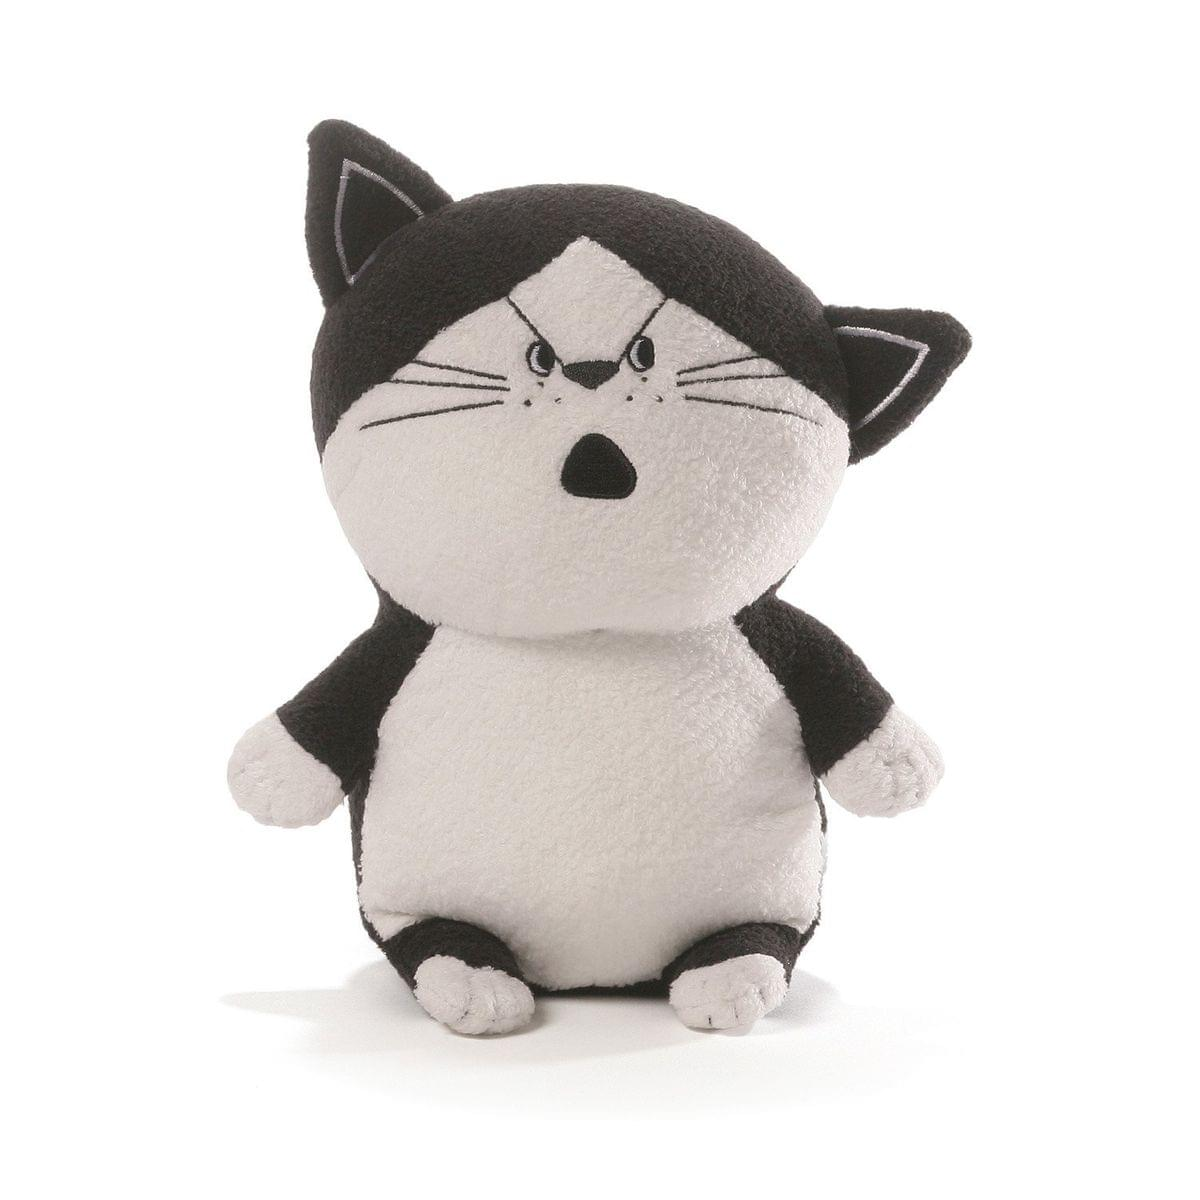 "Lupp the Cat Standing 10"" Beanbag Plush"